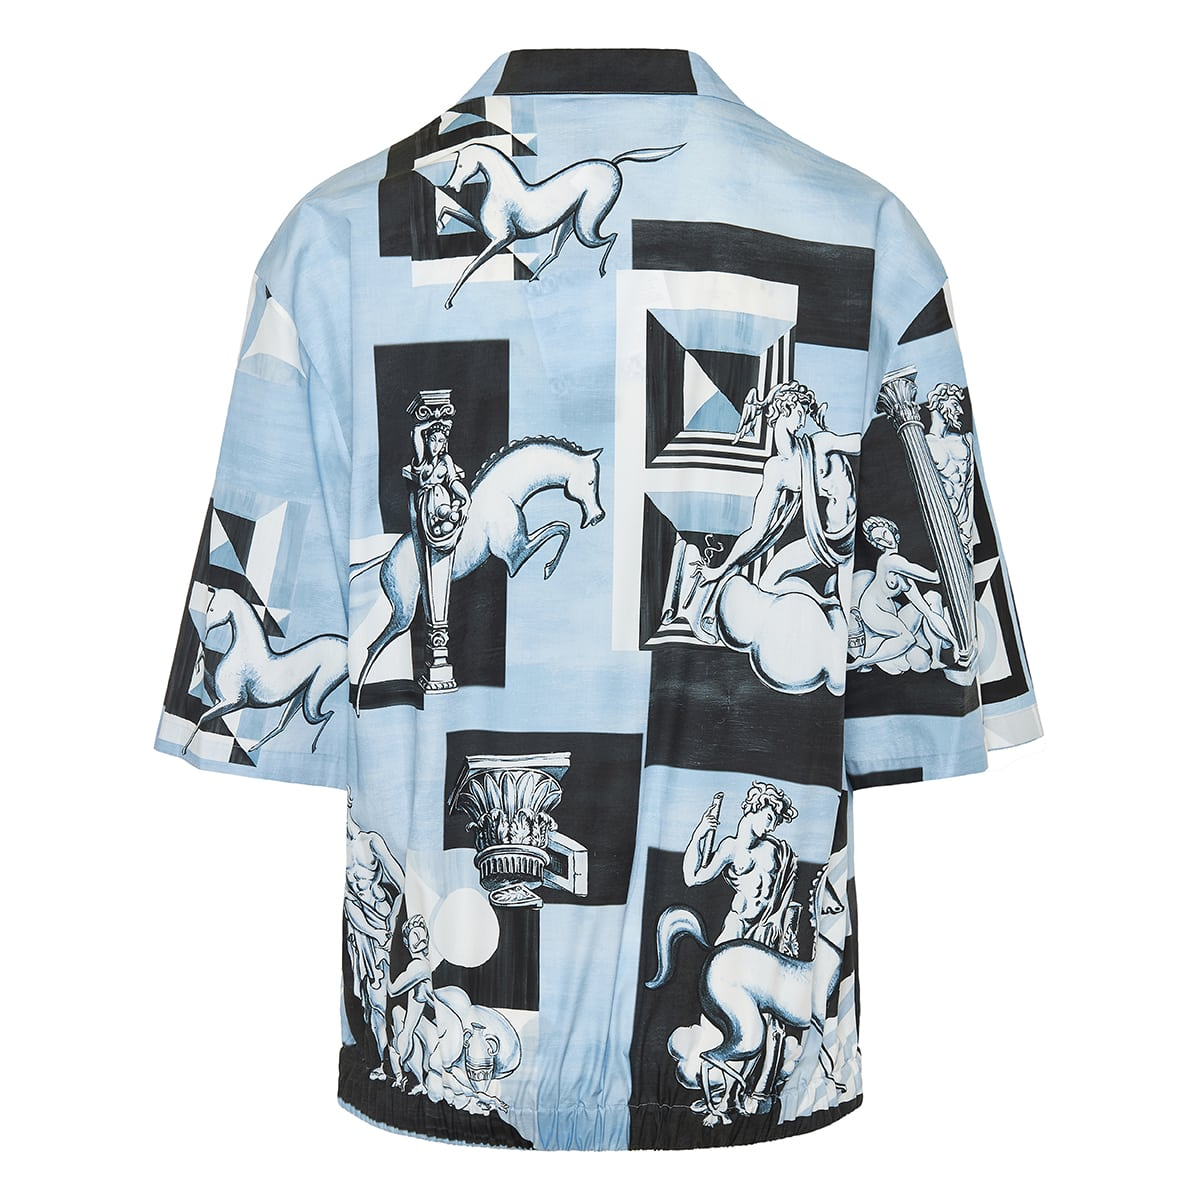 Oversized printed cotton shirt